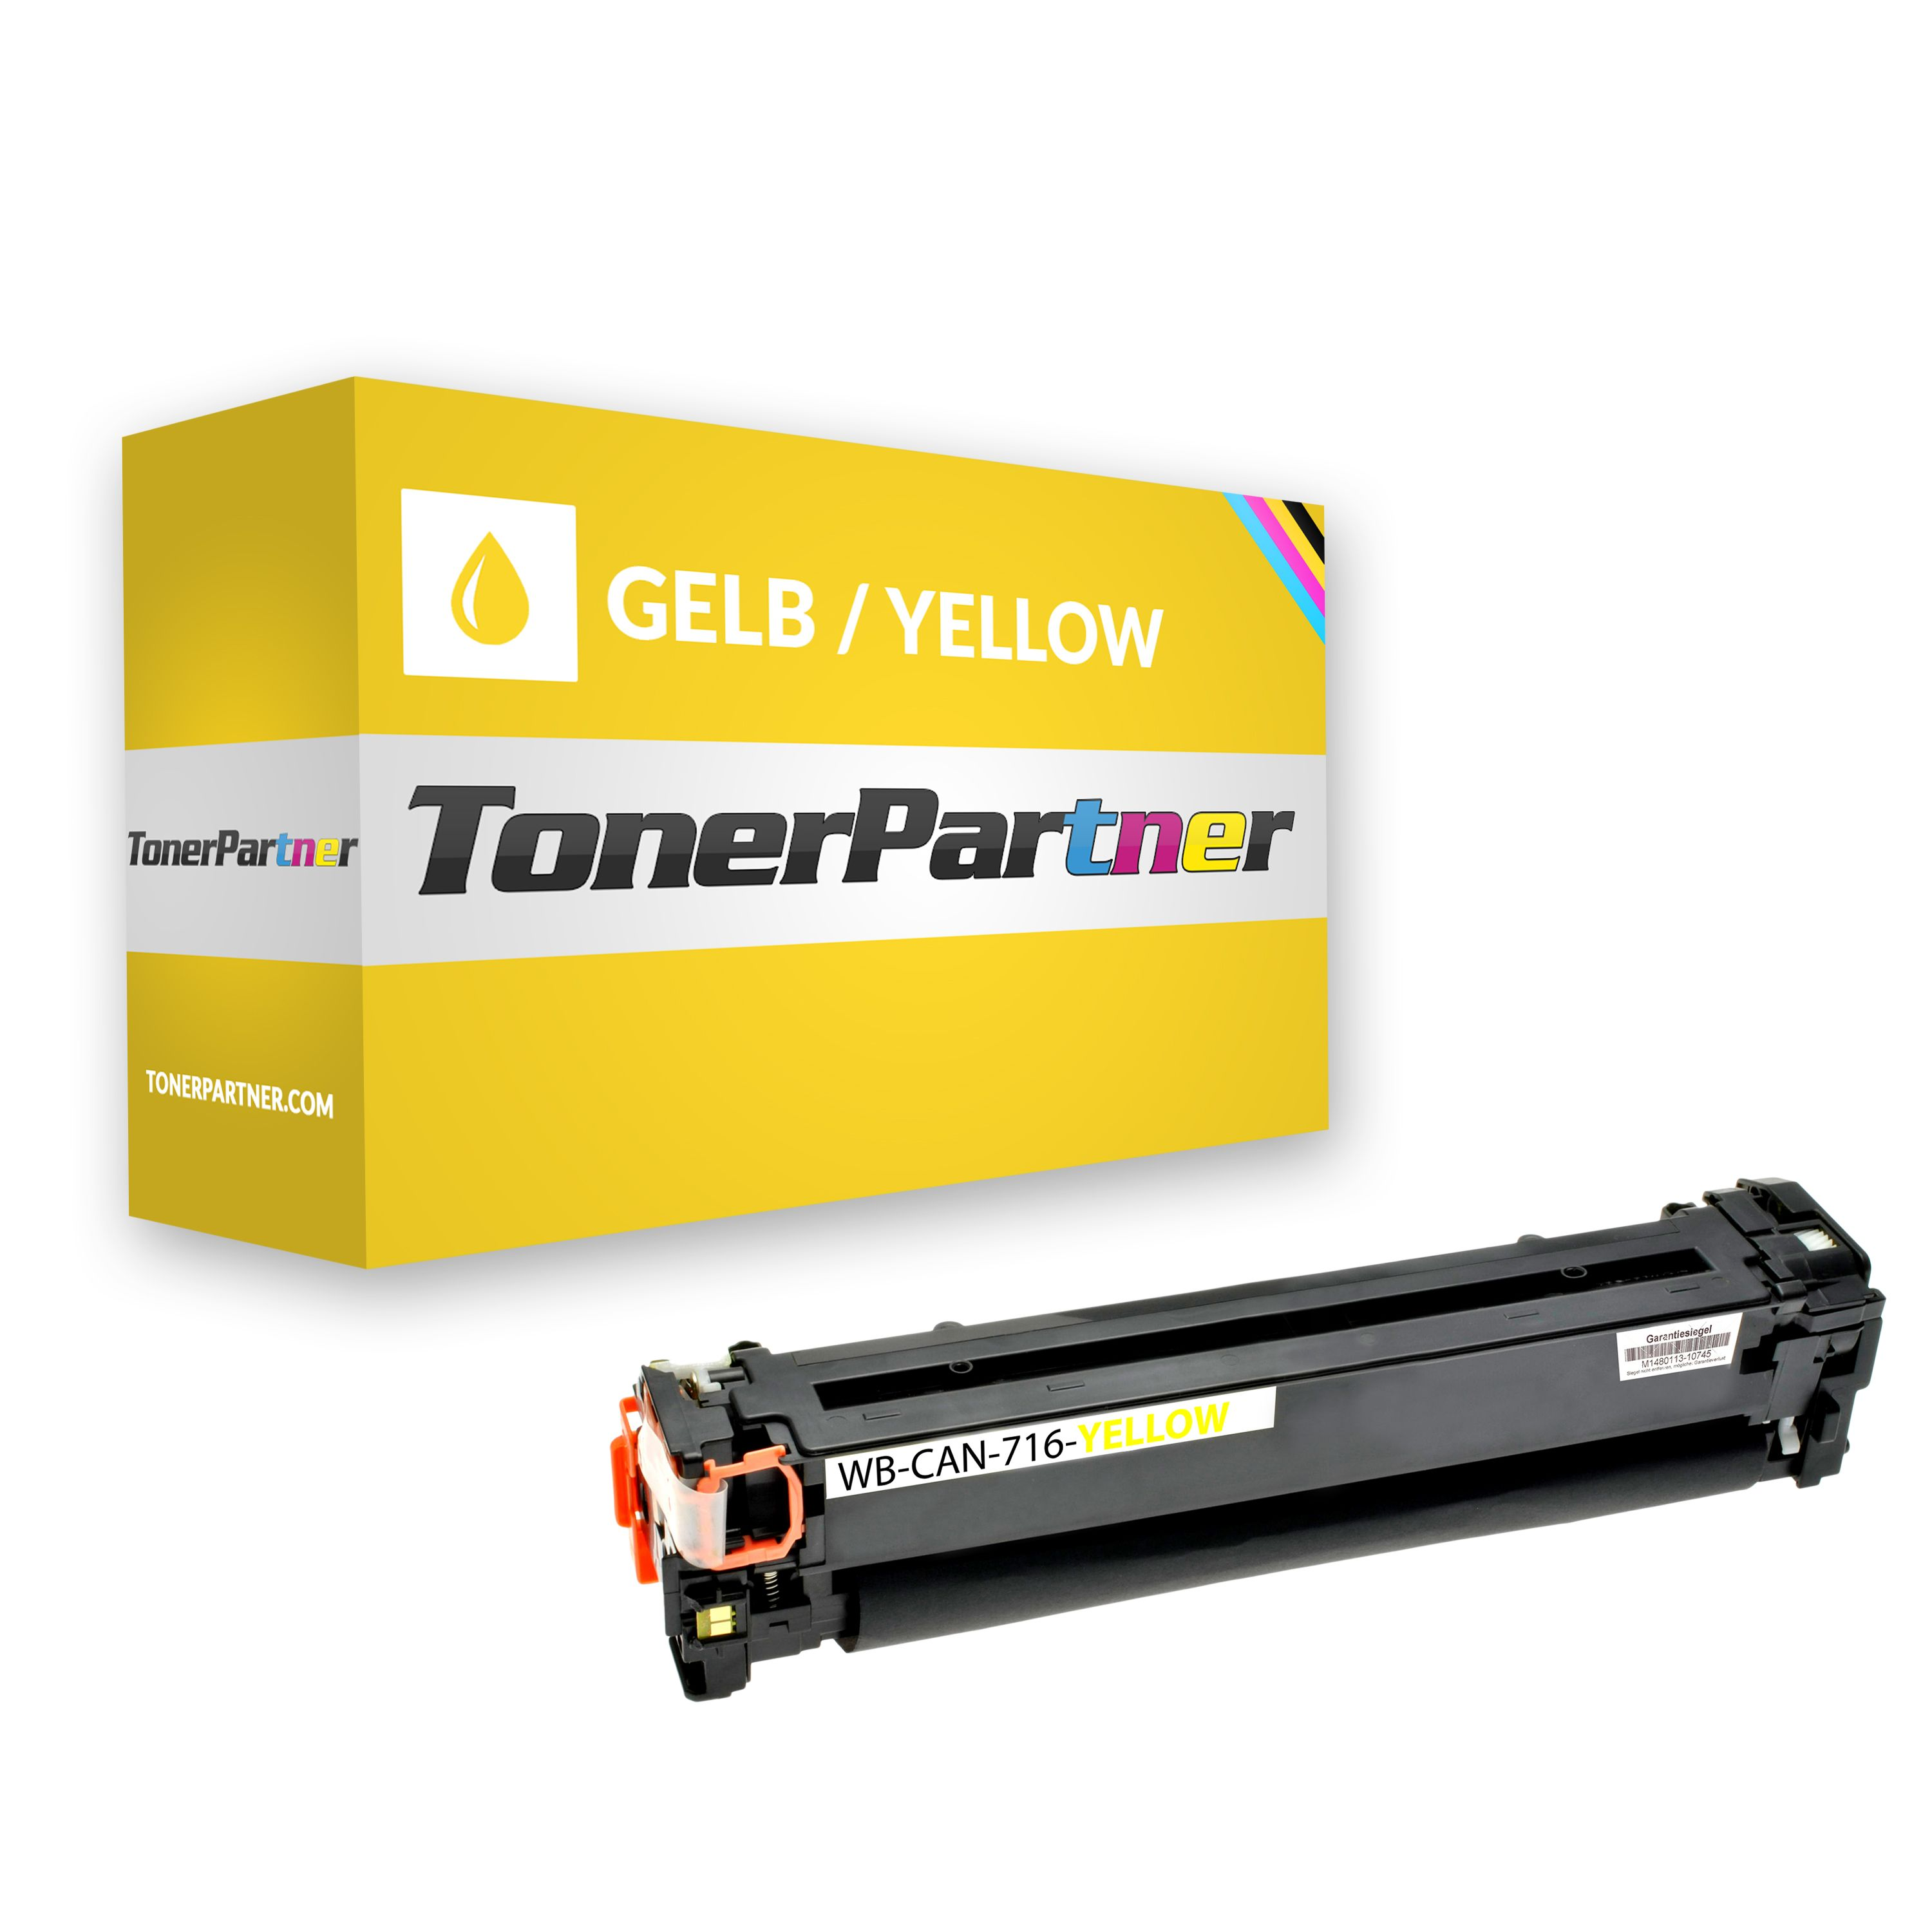 Compatible to Canon 1977B002 / 716Y Toner yellow